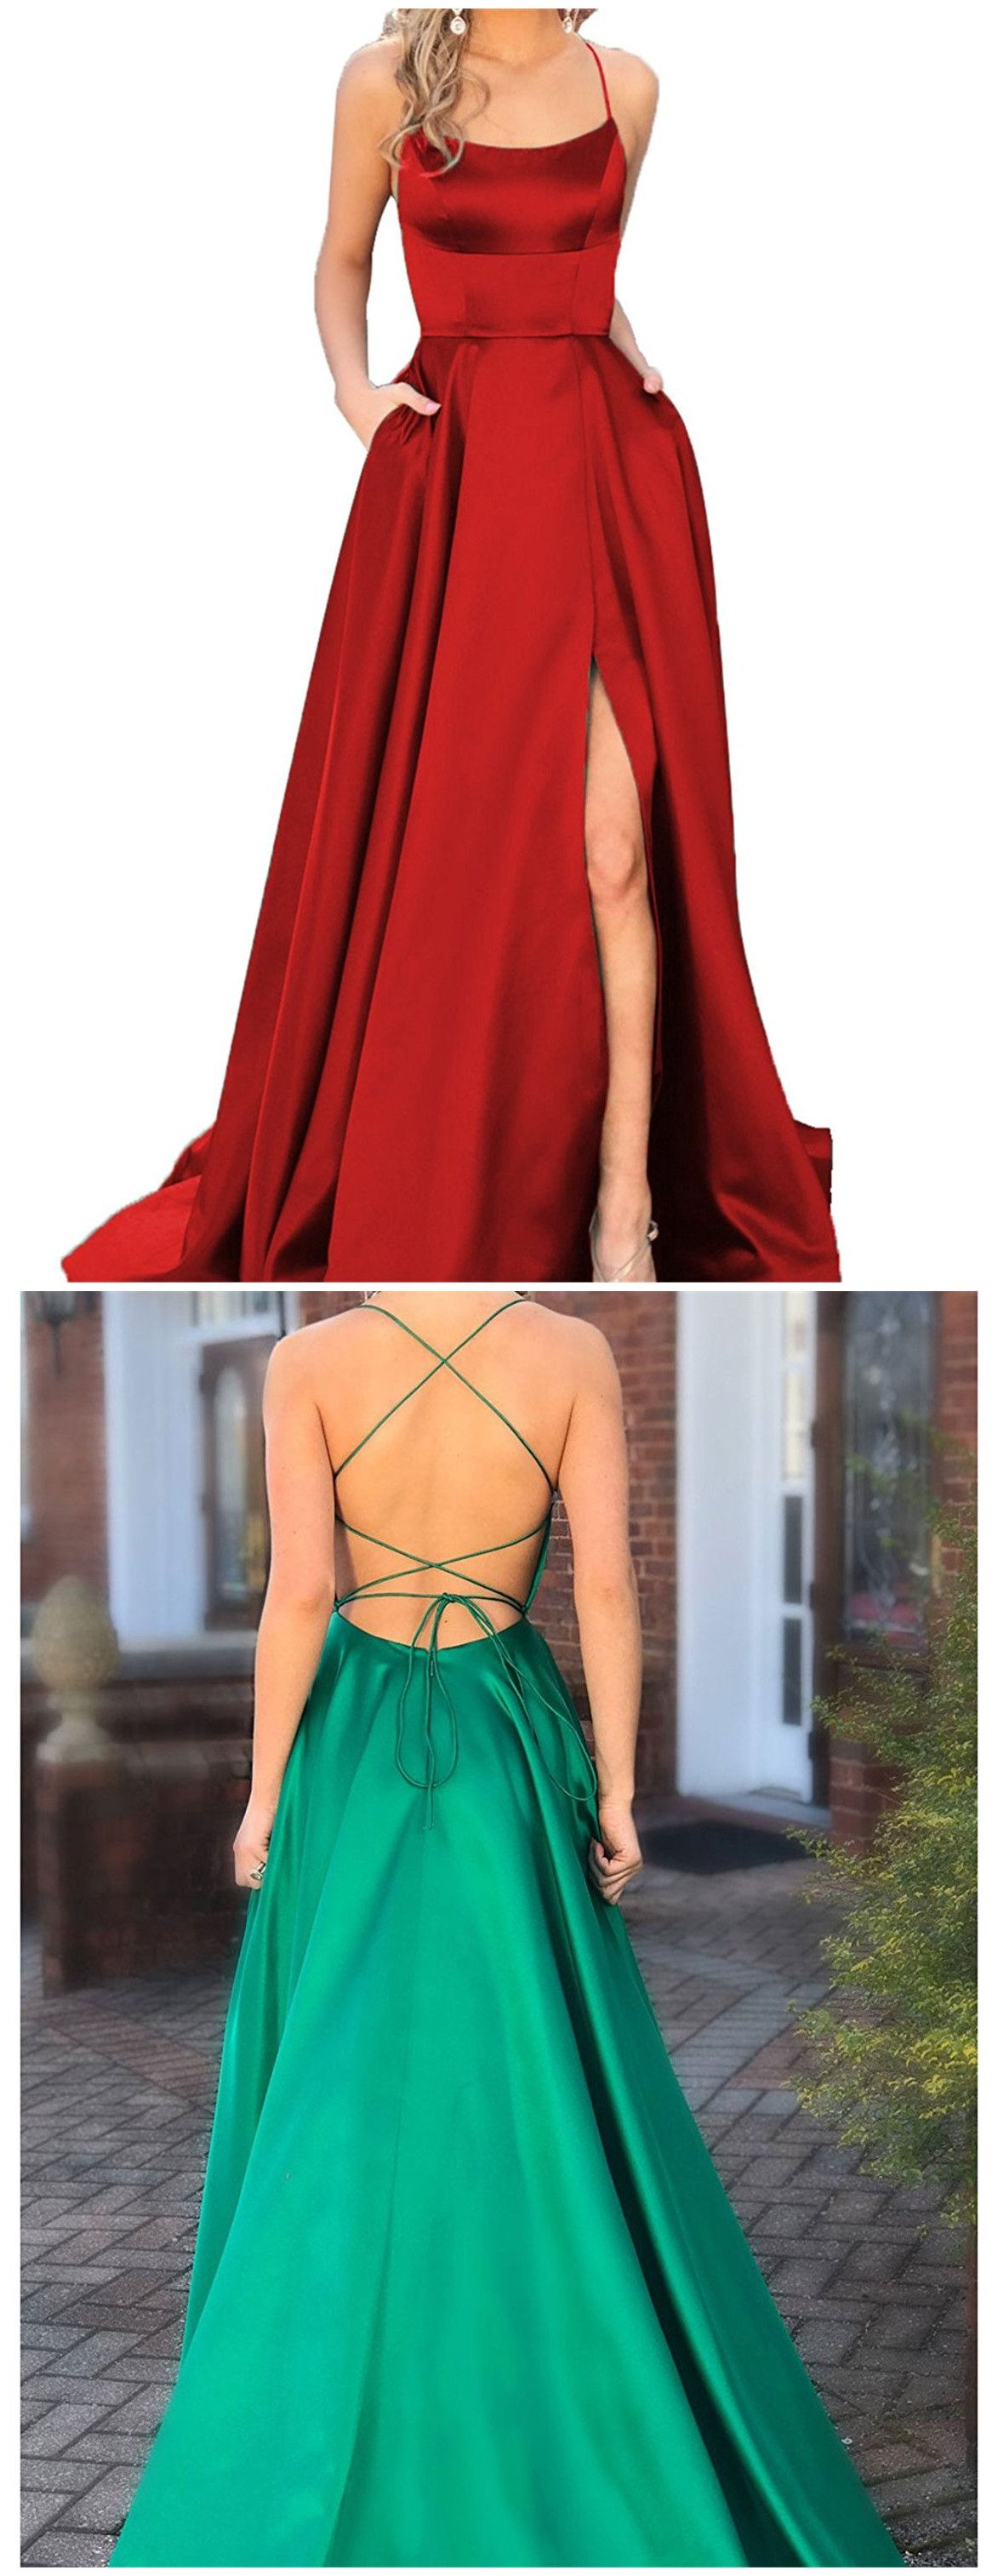 Sexy backless spaghetti straps prom dress simple long prom dresses